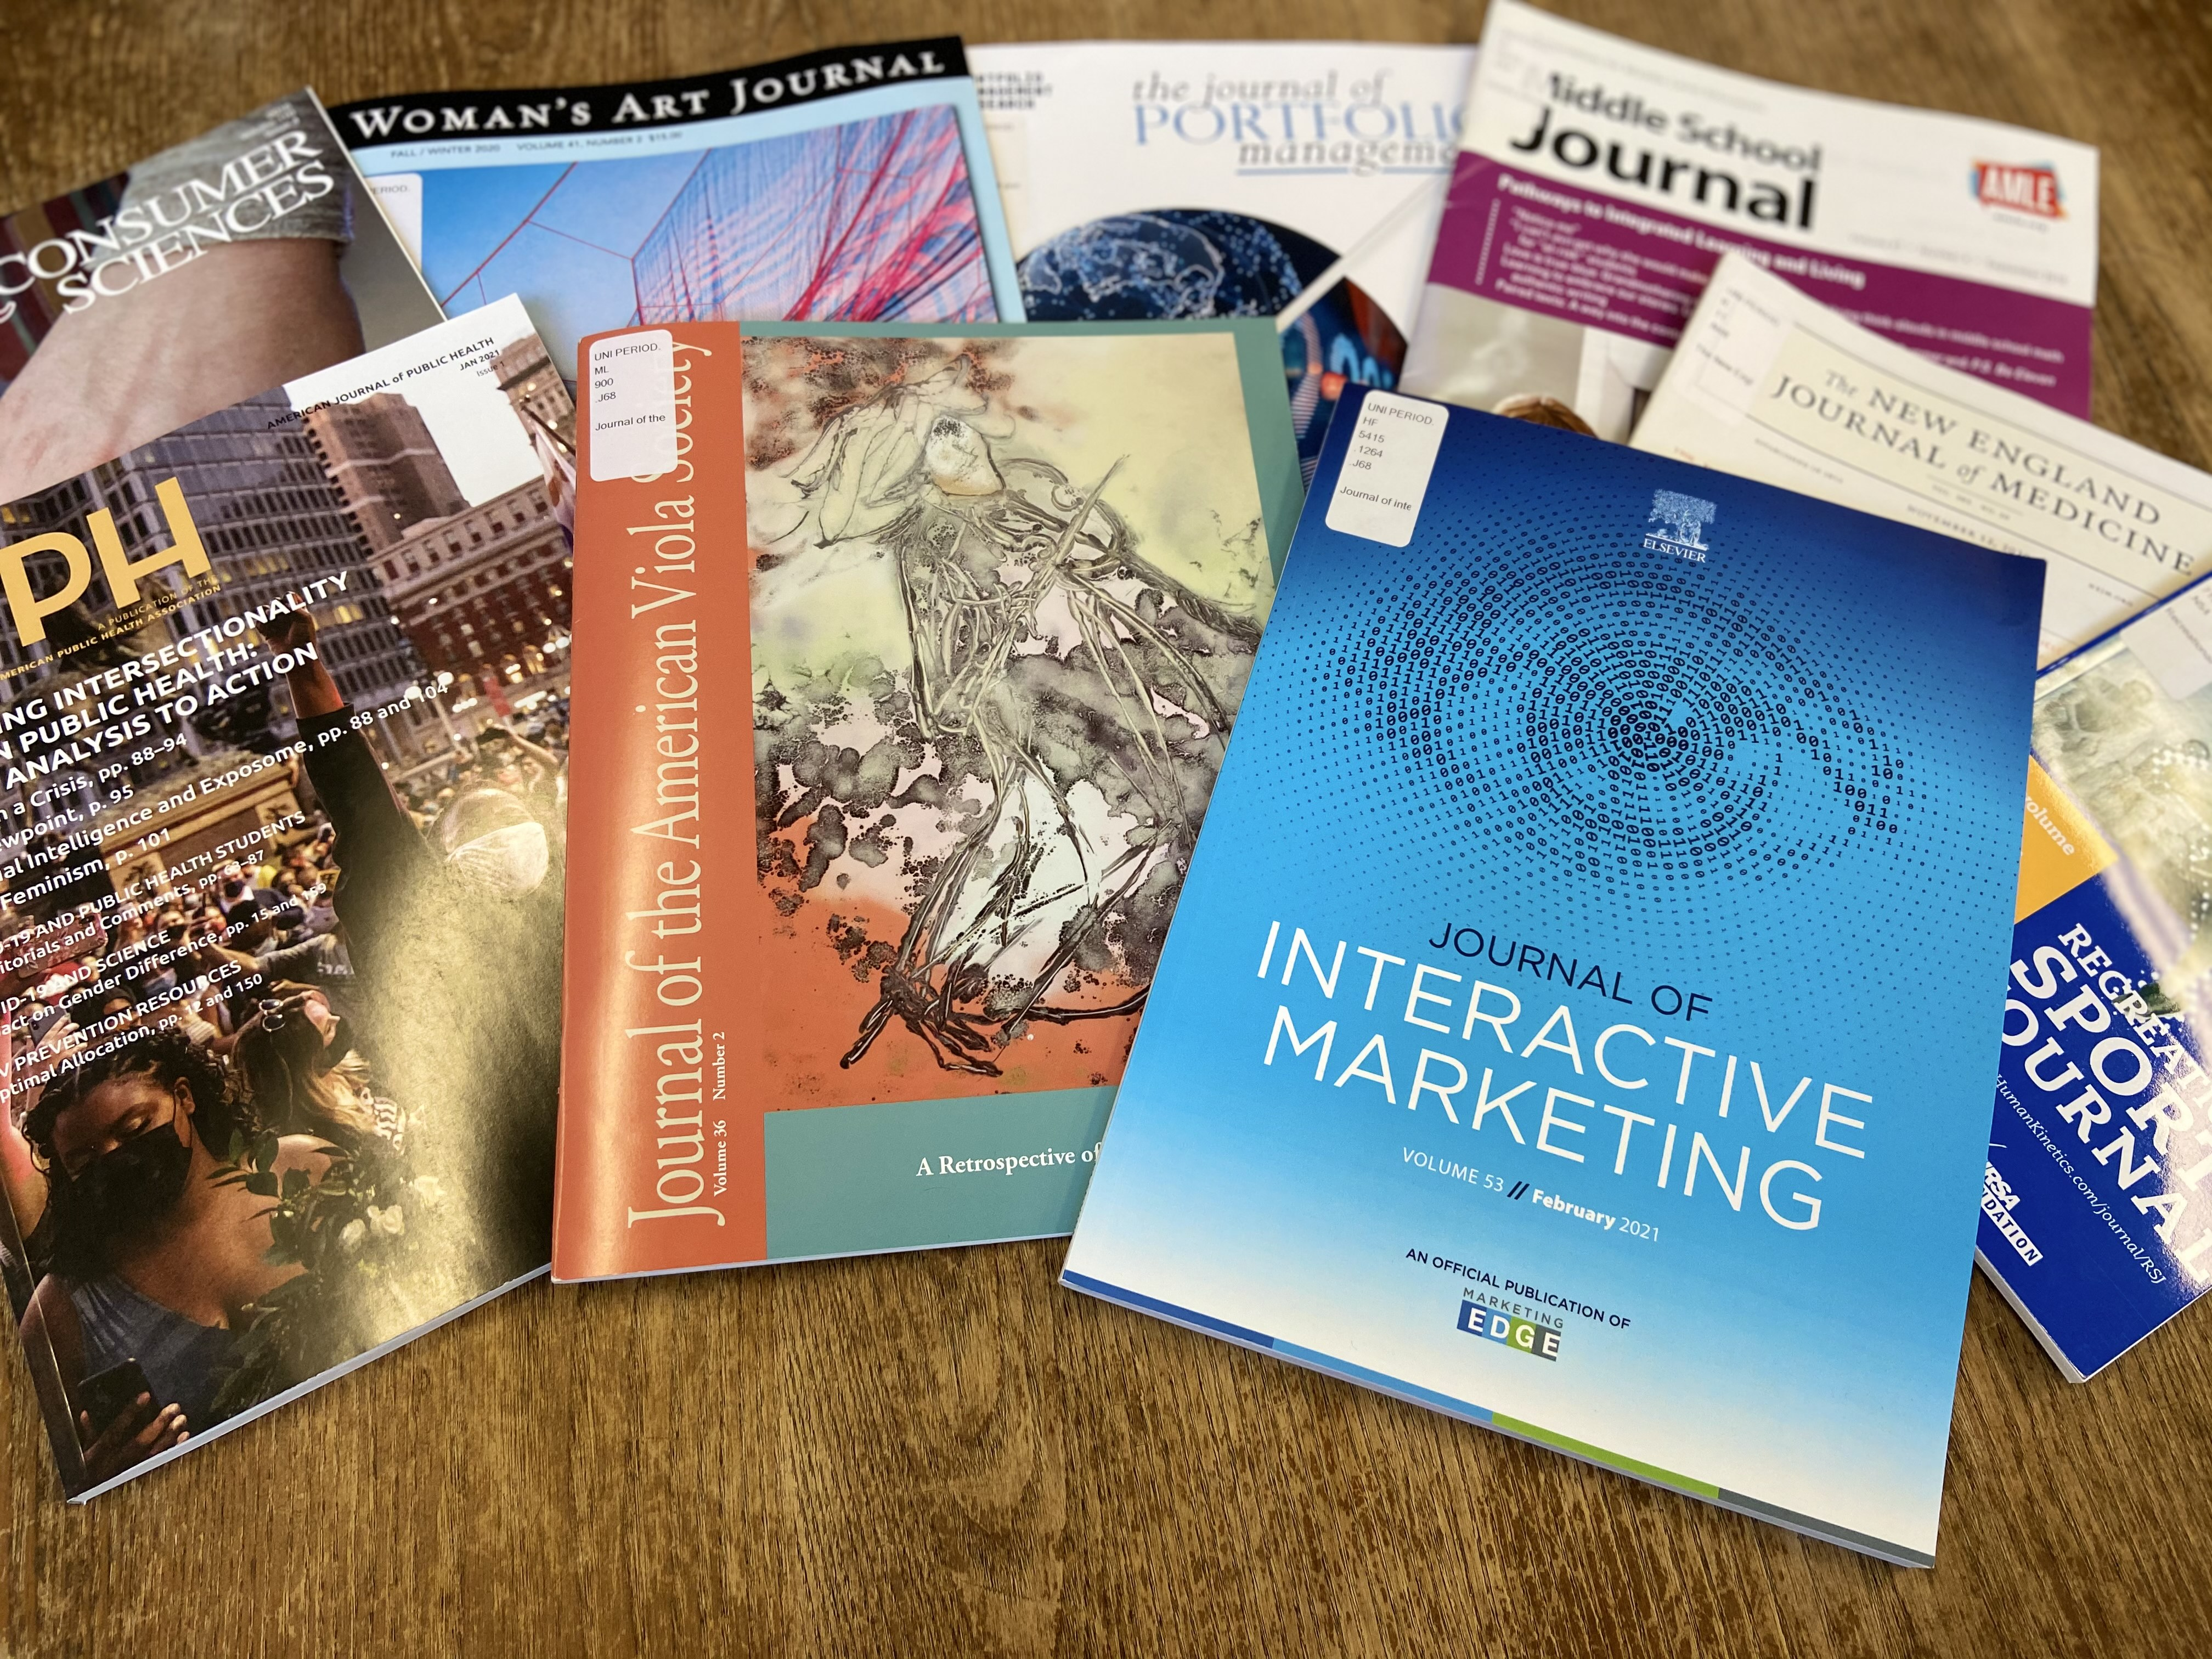 a stack of scholarly journals on a table, including the Journal of Interactive Marketing